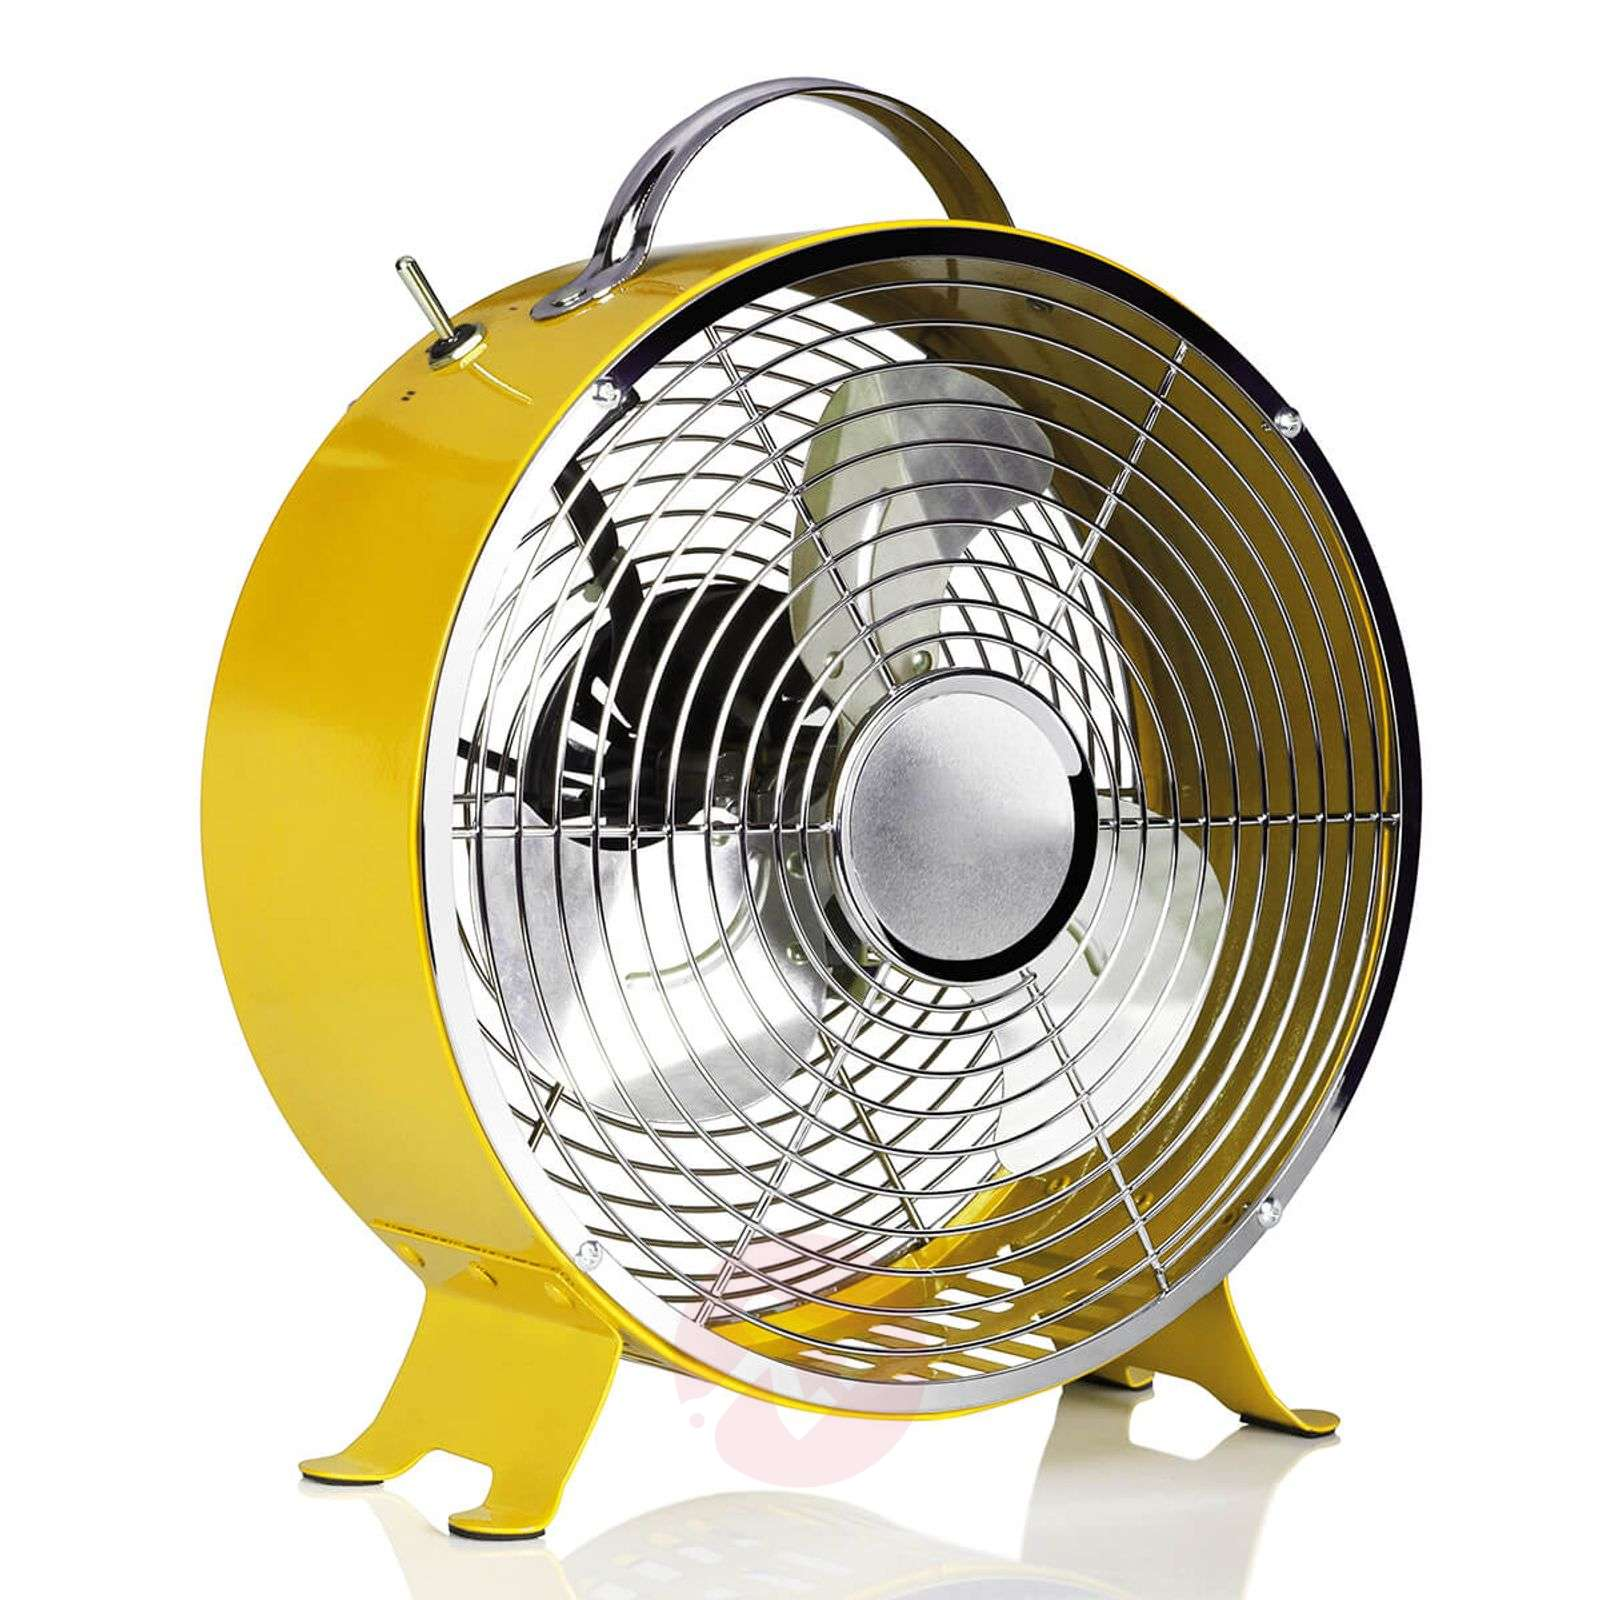 Ventilateur de table VE5964 jaune-8569021-01